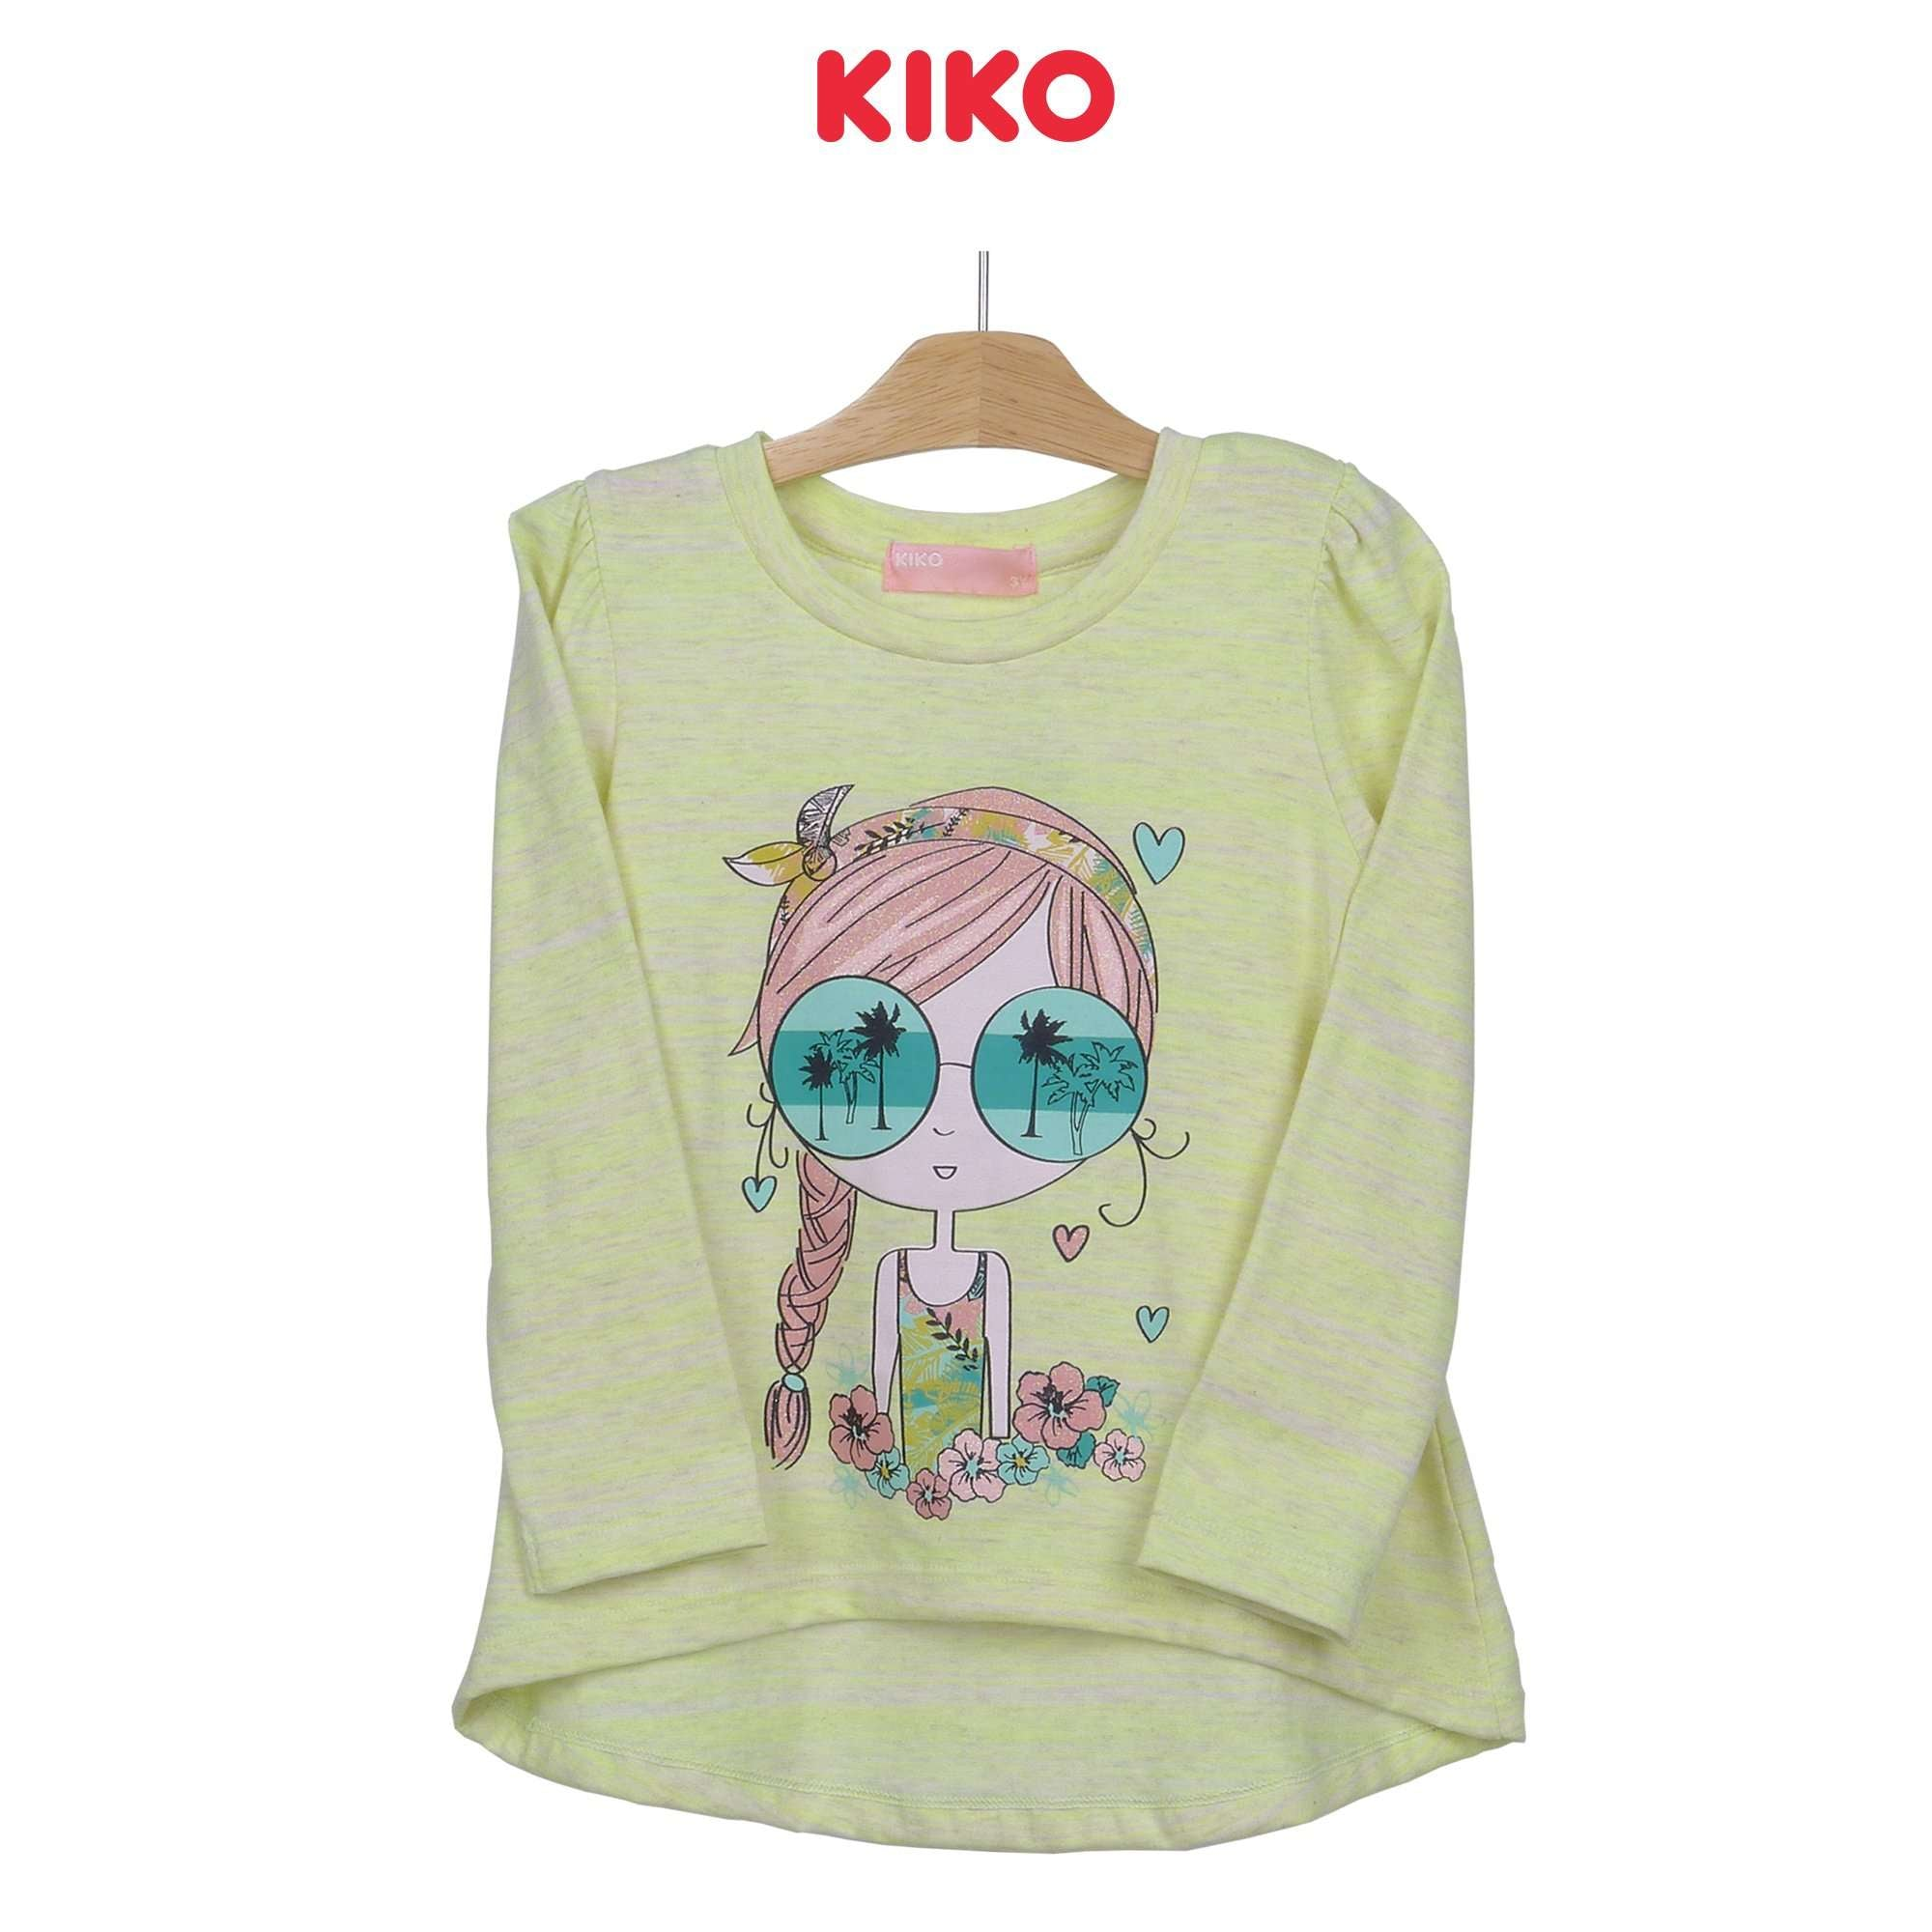 KIKO Girl Round Neck Long Sleeve Tee 126073-131 : Buy KIKO online at CMG.MY